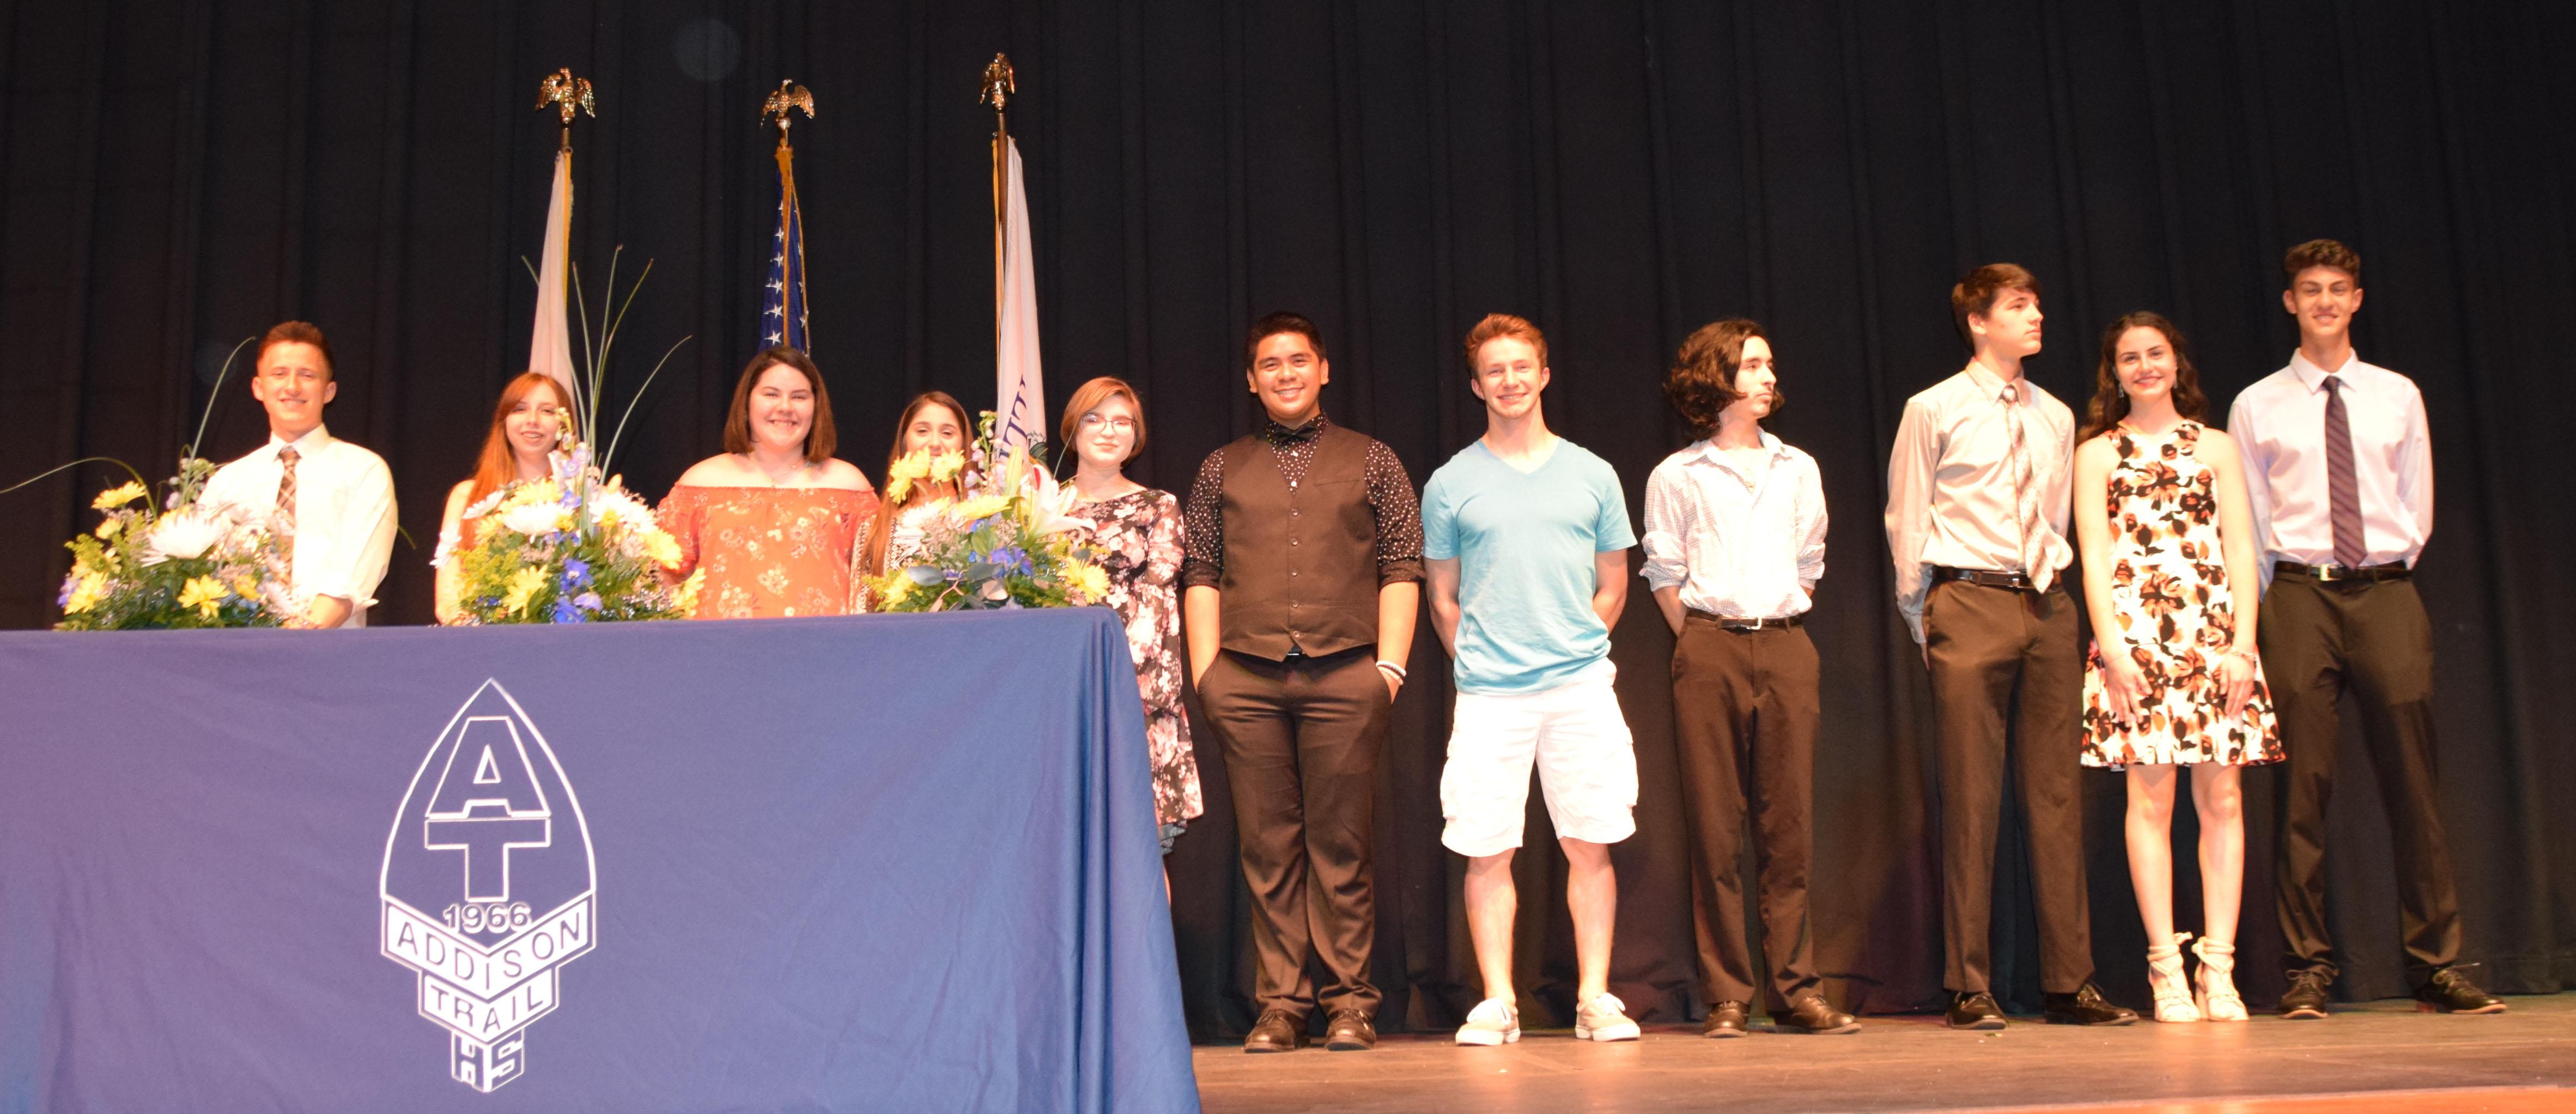 Addison Trail hosts annual Senior Awards Night